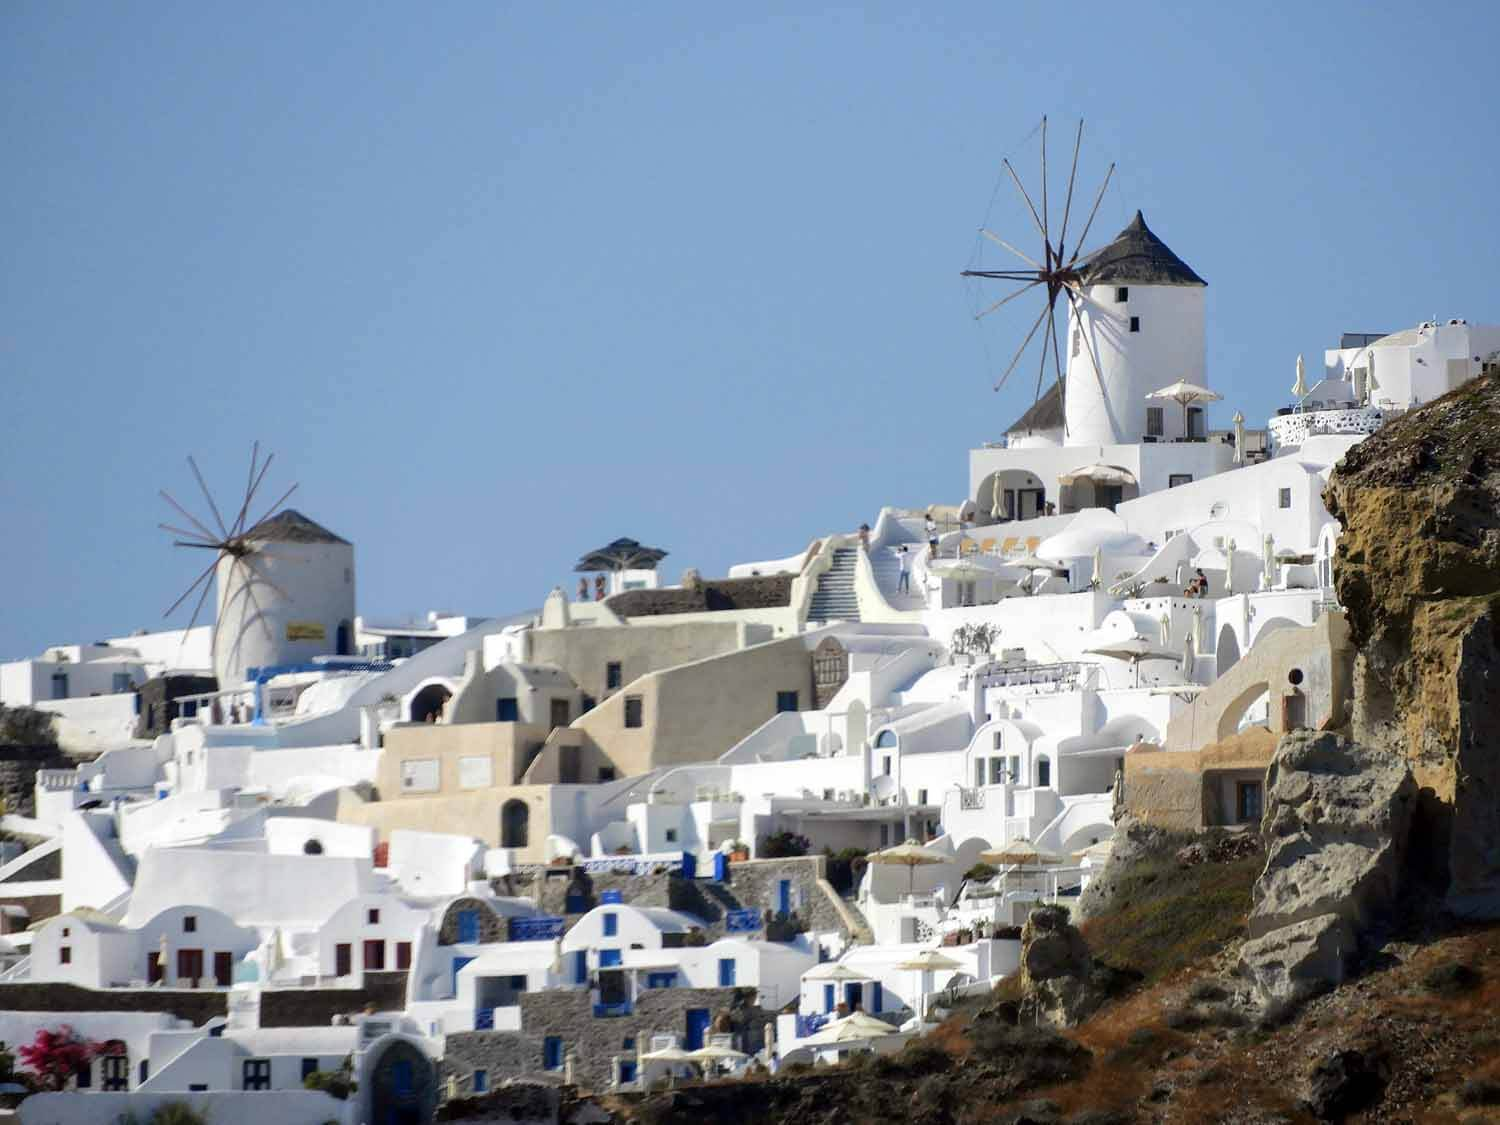 greece-santorini-windmill-hilltop-village.jpg